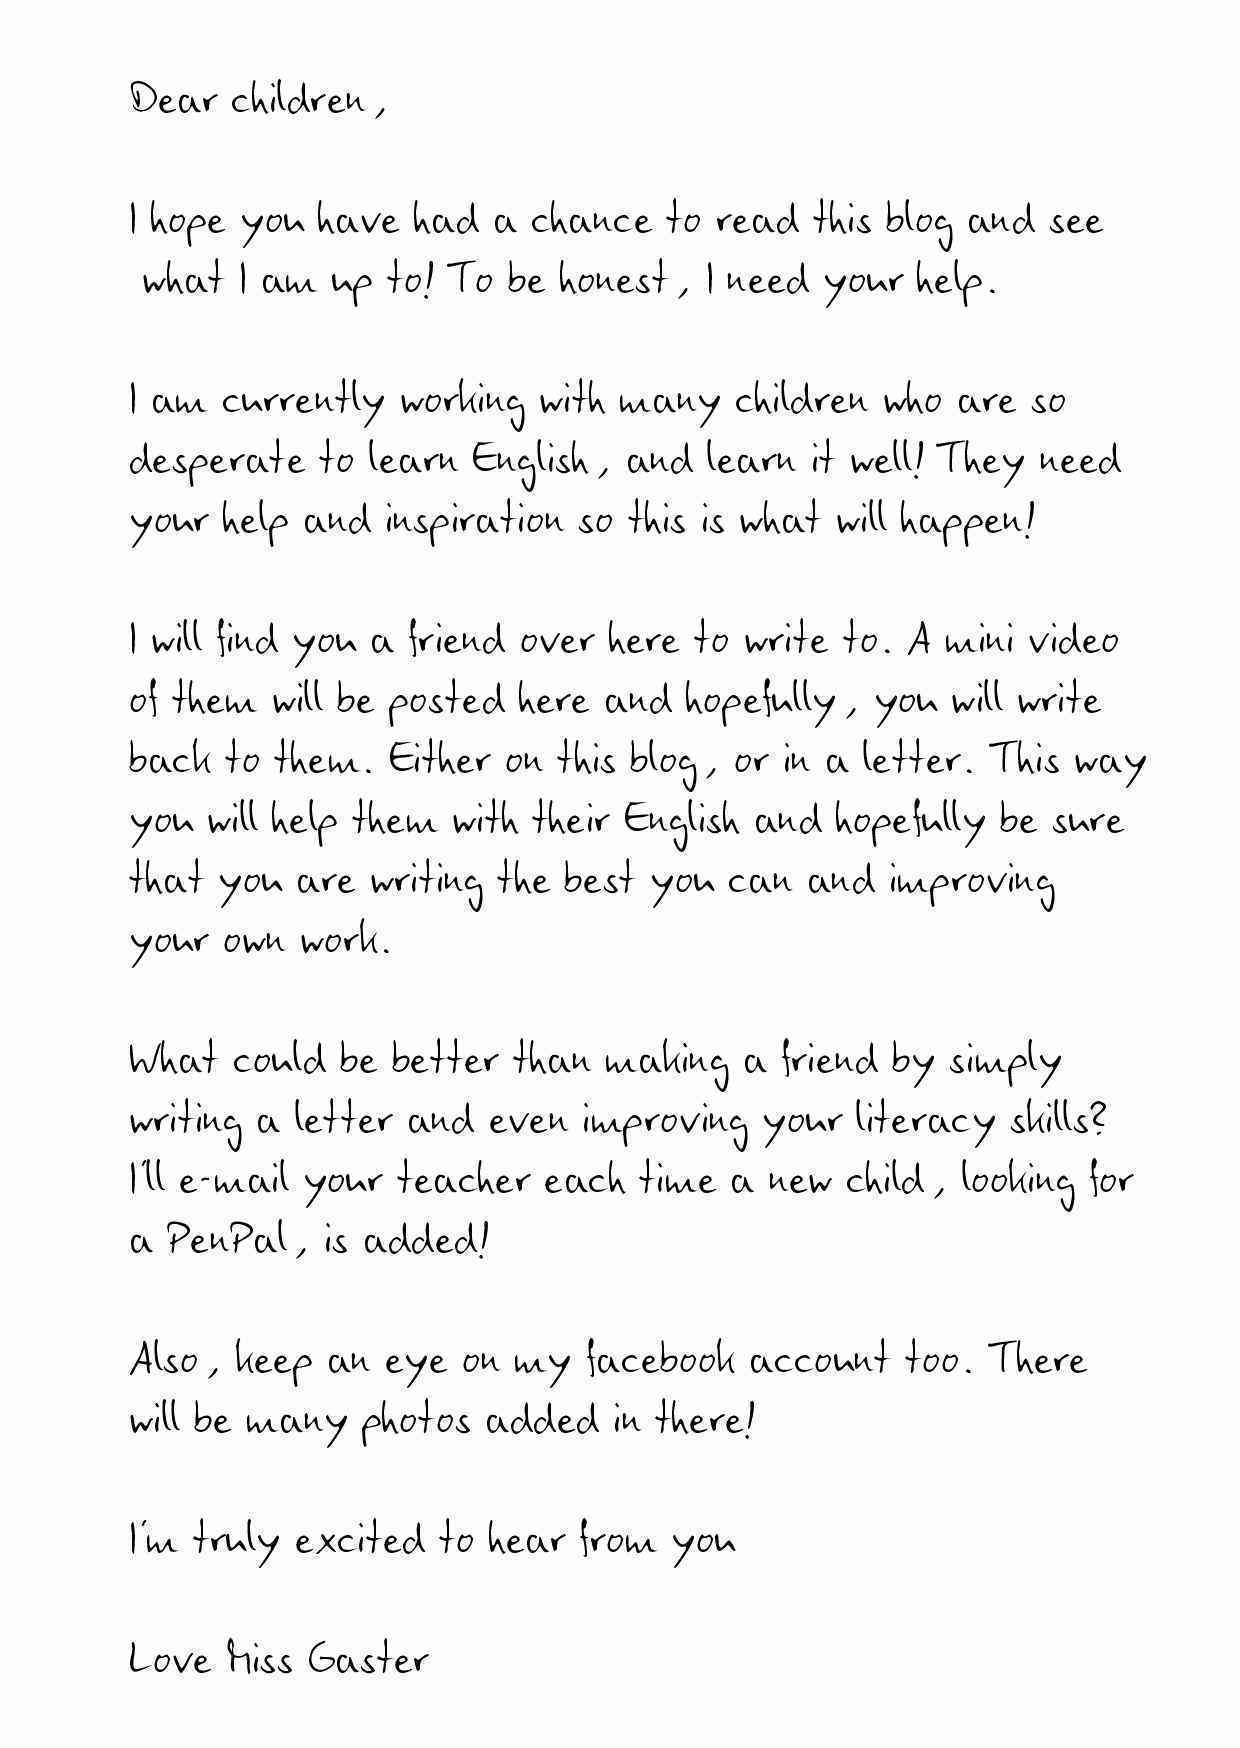 pen pal letter template printable Collection-Pen Pal Letter Template Awesome Pen Pal Letter Template Inspirational How to Write A Pen Pal 18-n